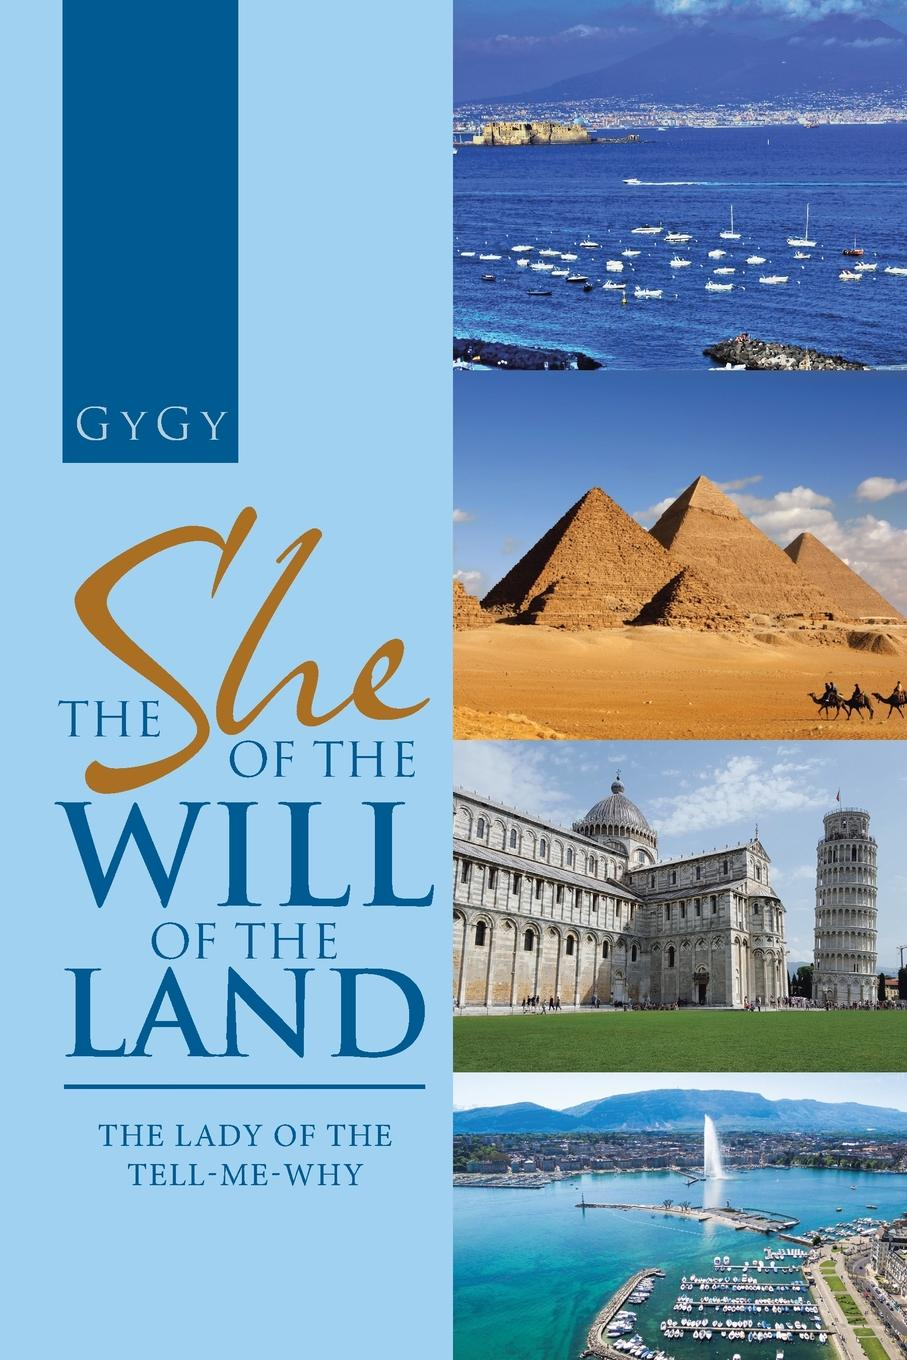 GyGy The She of the Will of the Land. The Lady of the Tell-Me-Why the